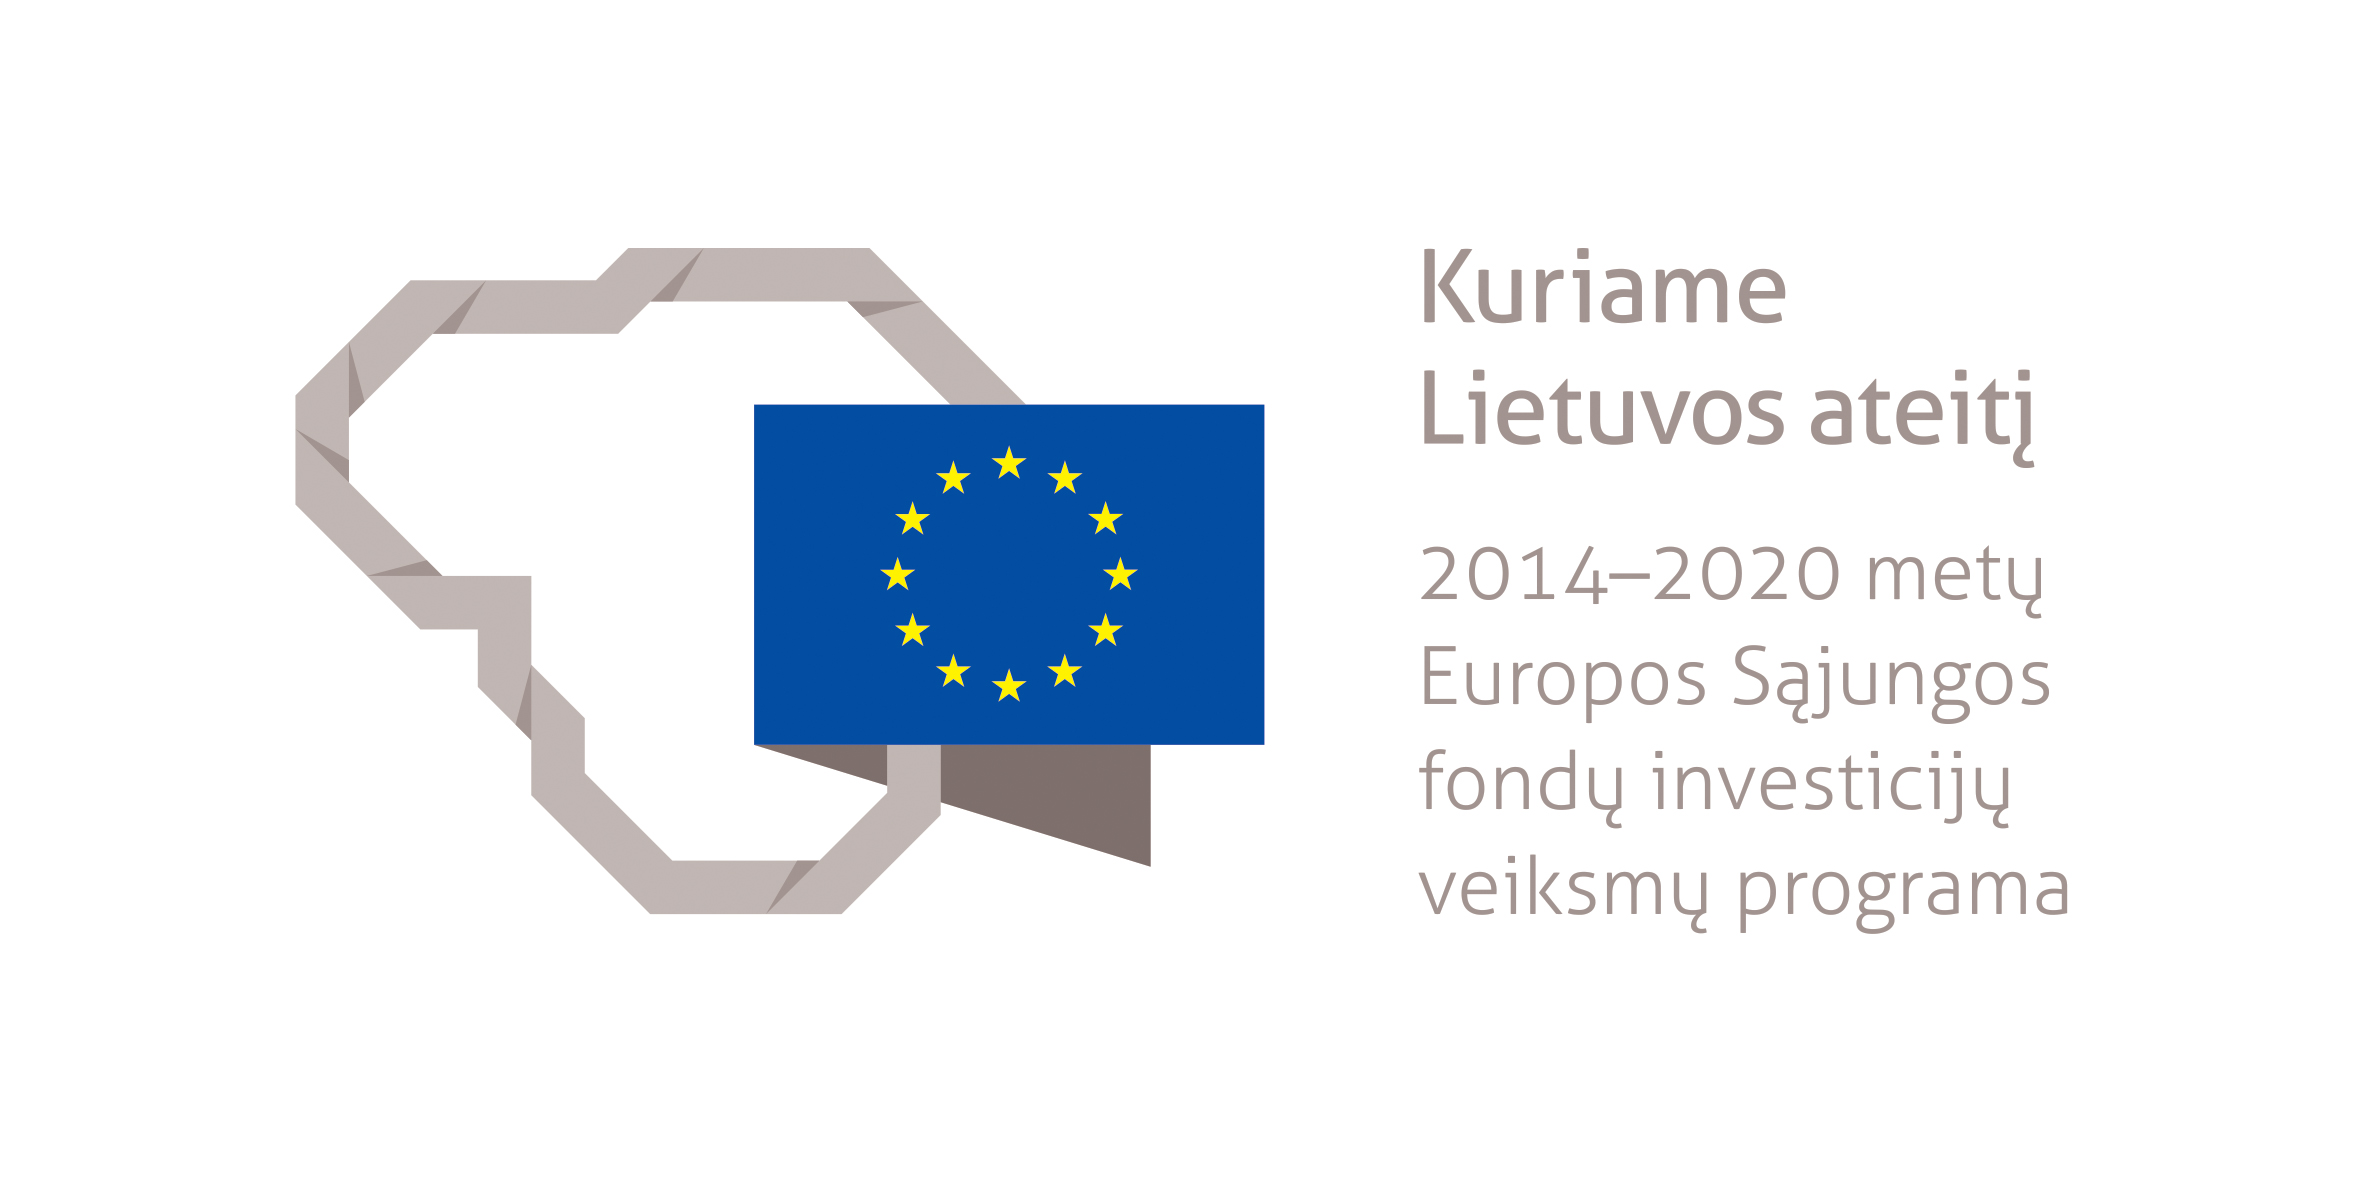 Search for new foreign markets and development of existing markets